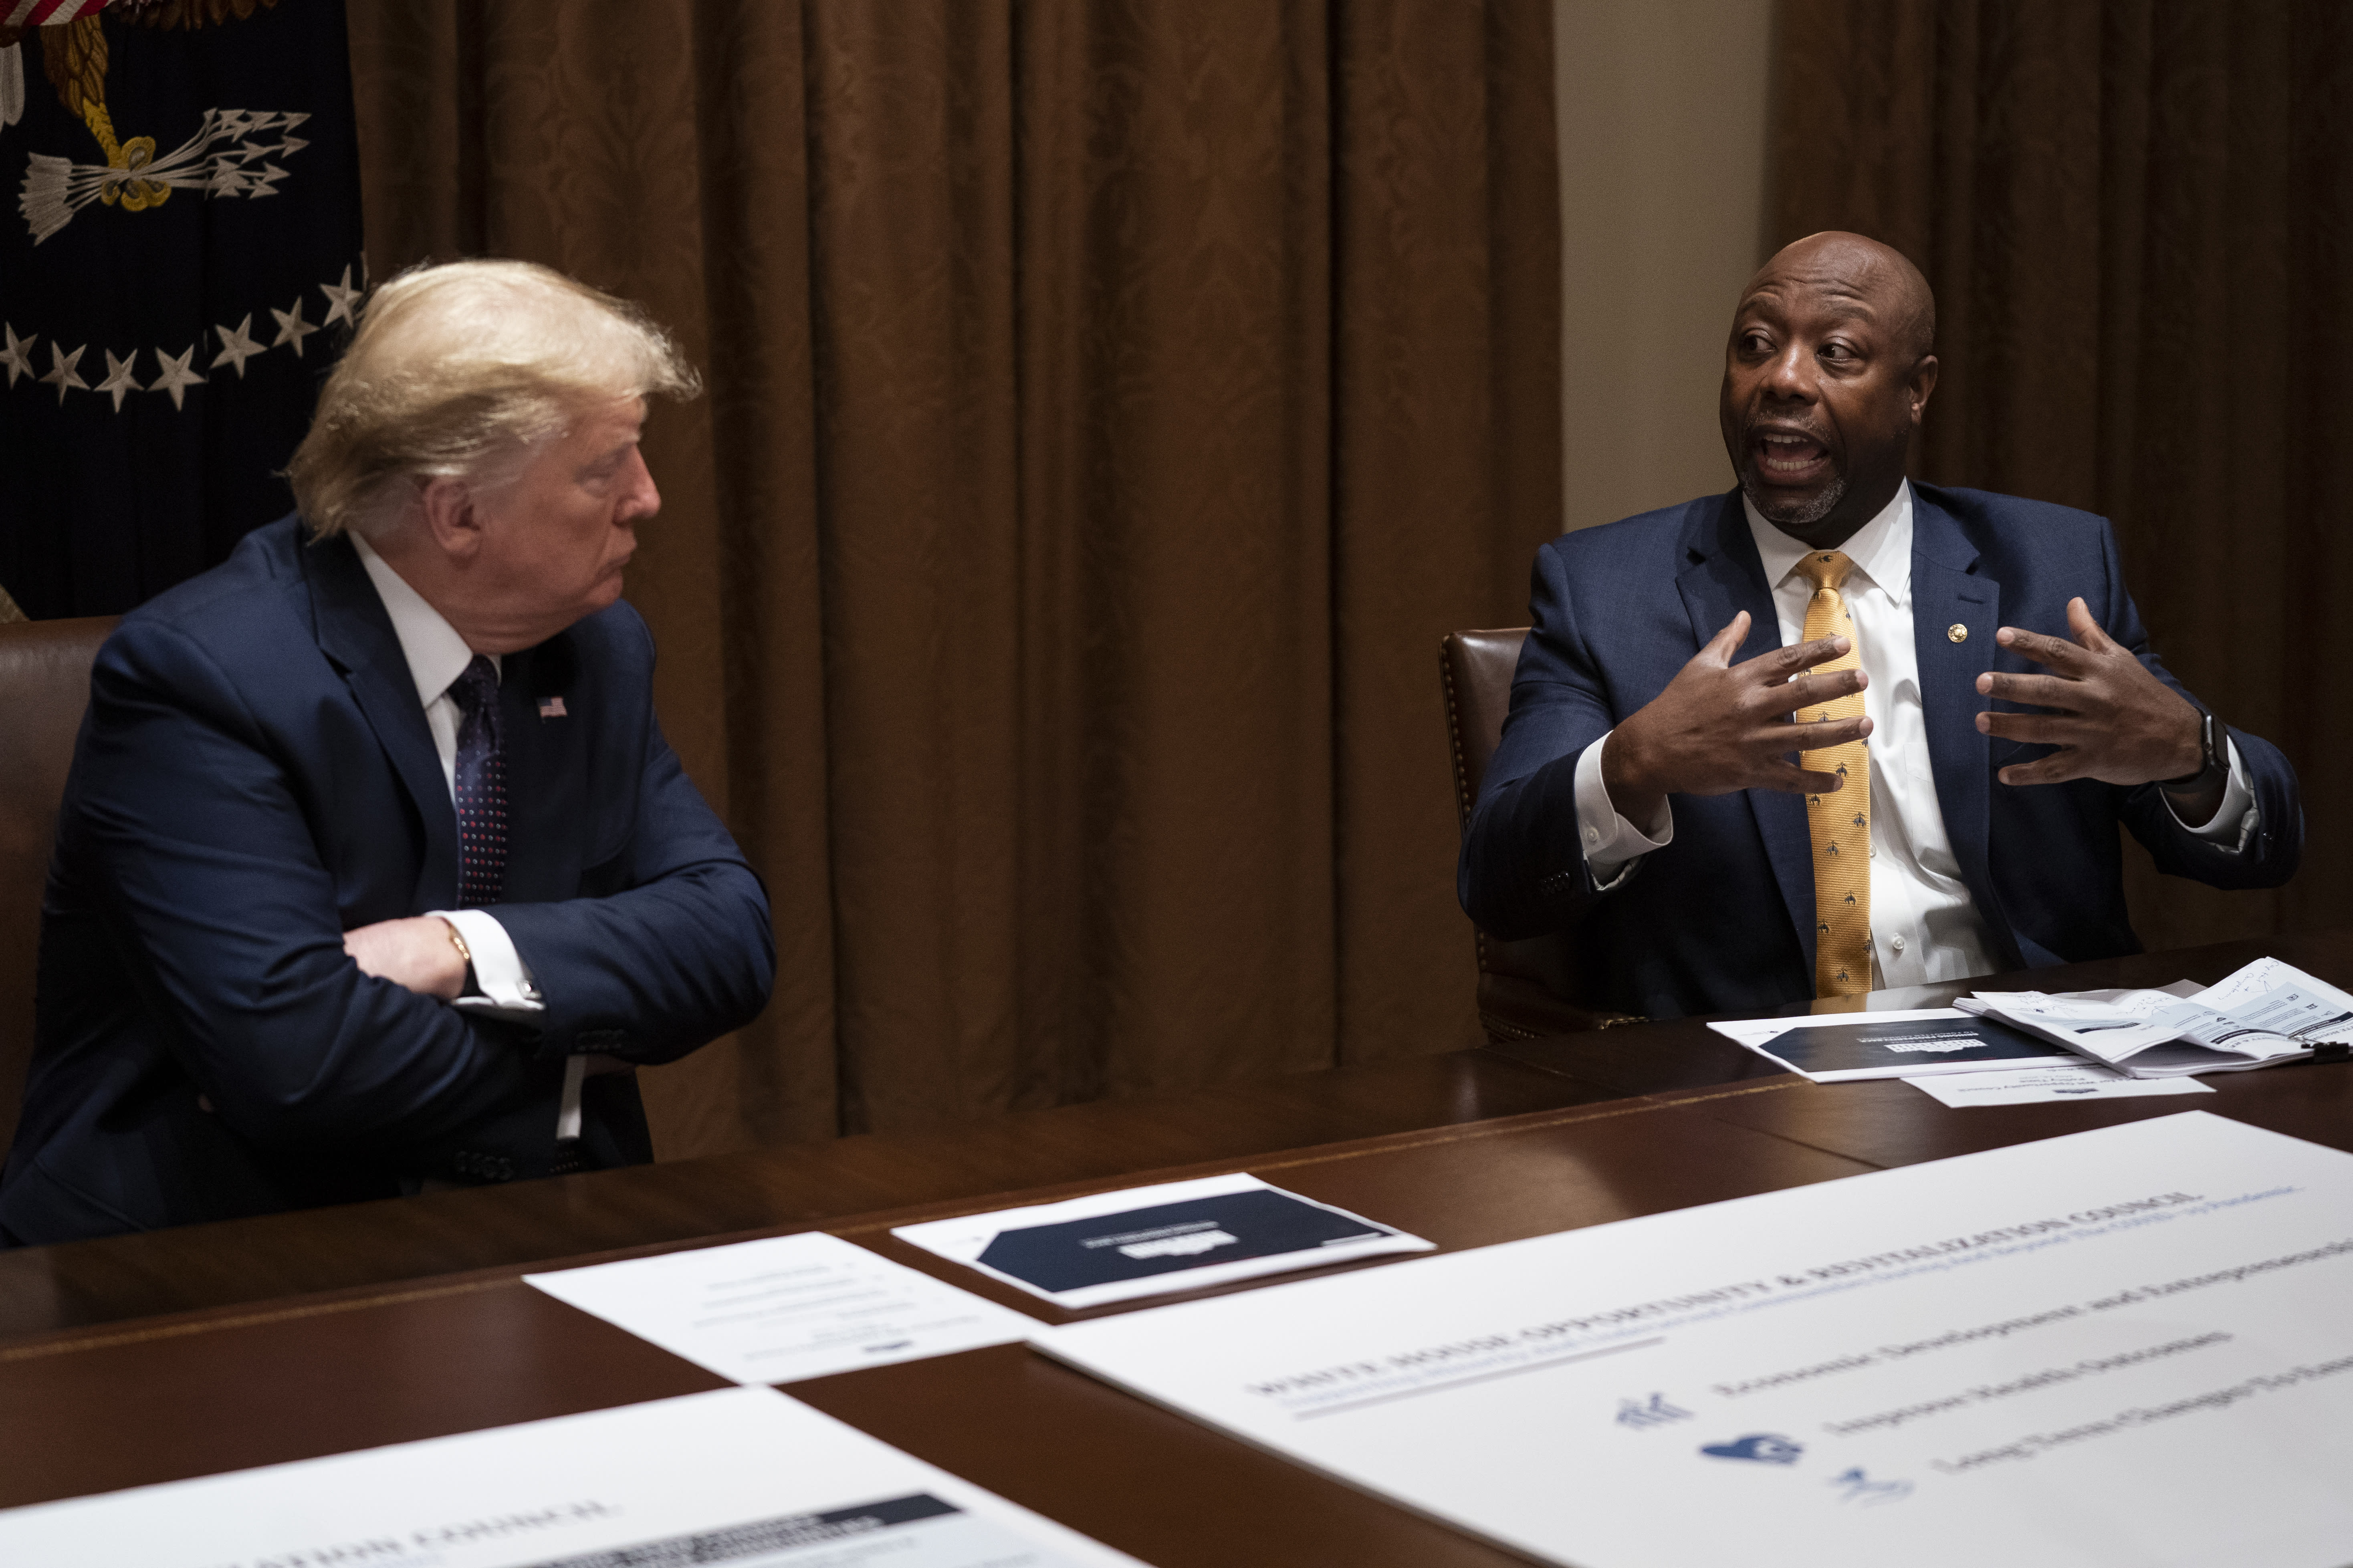 FILE - In this May 18, 2020, file photo, President Donald Trump listens as Sen. Tim Scott, R-S.C., speaks during a meeting on opportunity zones in the Cabinet Room of the White House in Washington. Initially reluctant to speak on race, Scott is now among the Republican Party's most prominent voices teaching his colleagues what it's like to be a Black man in America. (AP Photo/Evan Vucci, File)